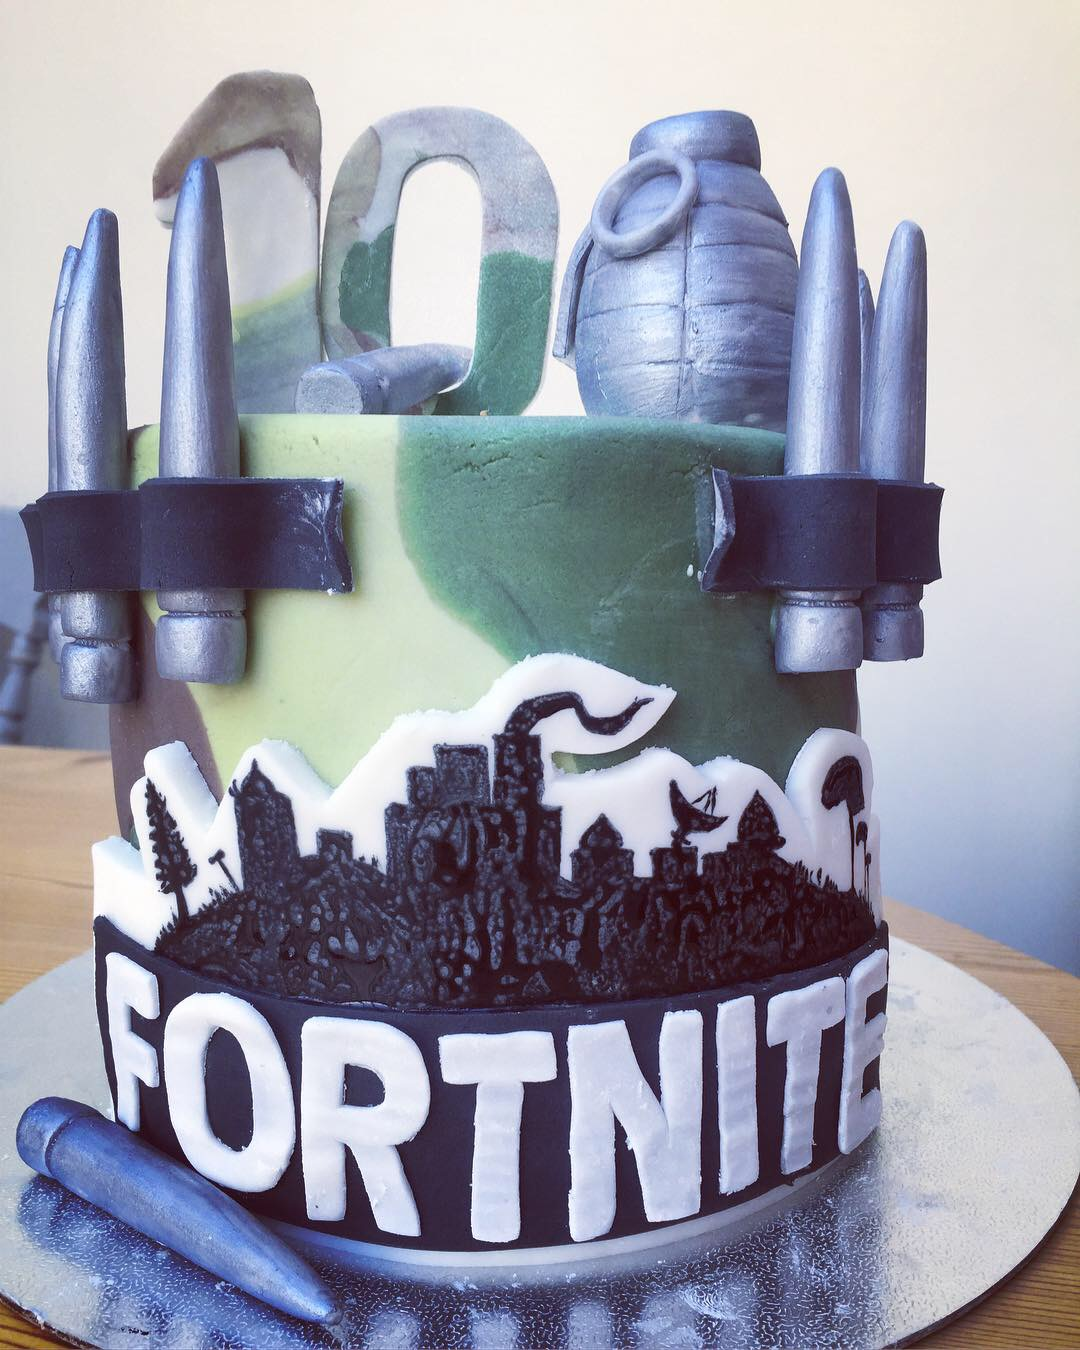 Fortnight game cake